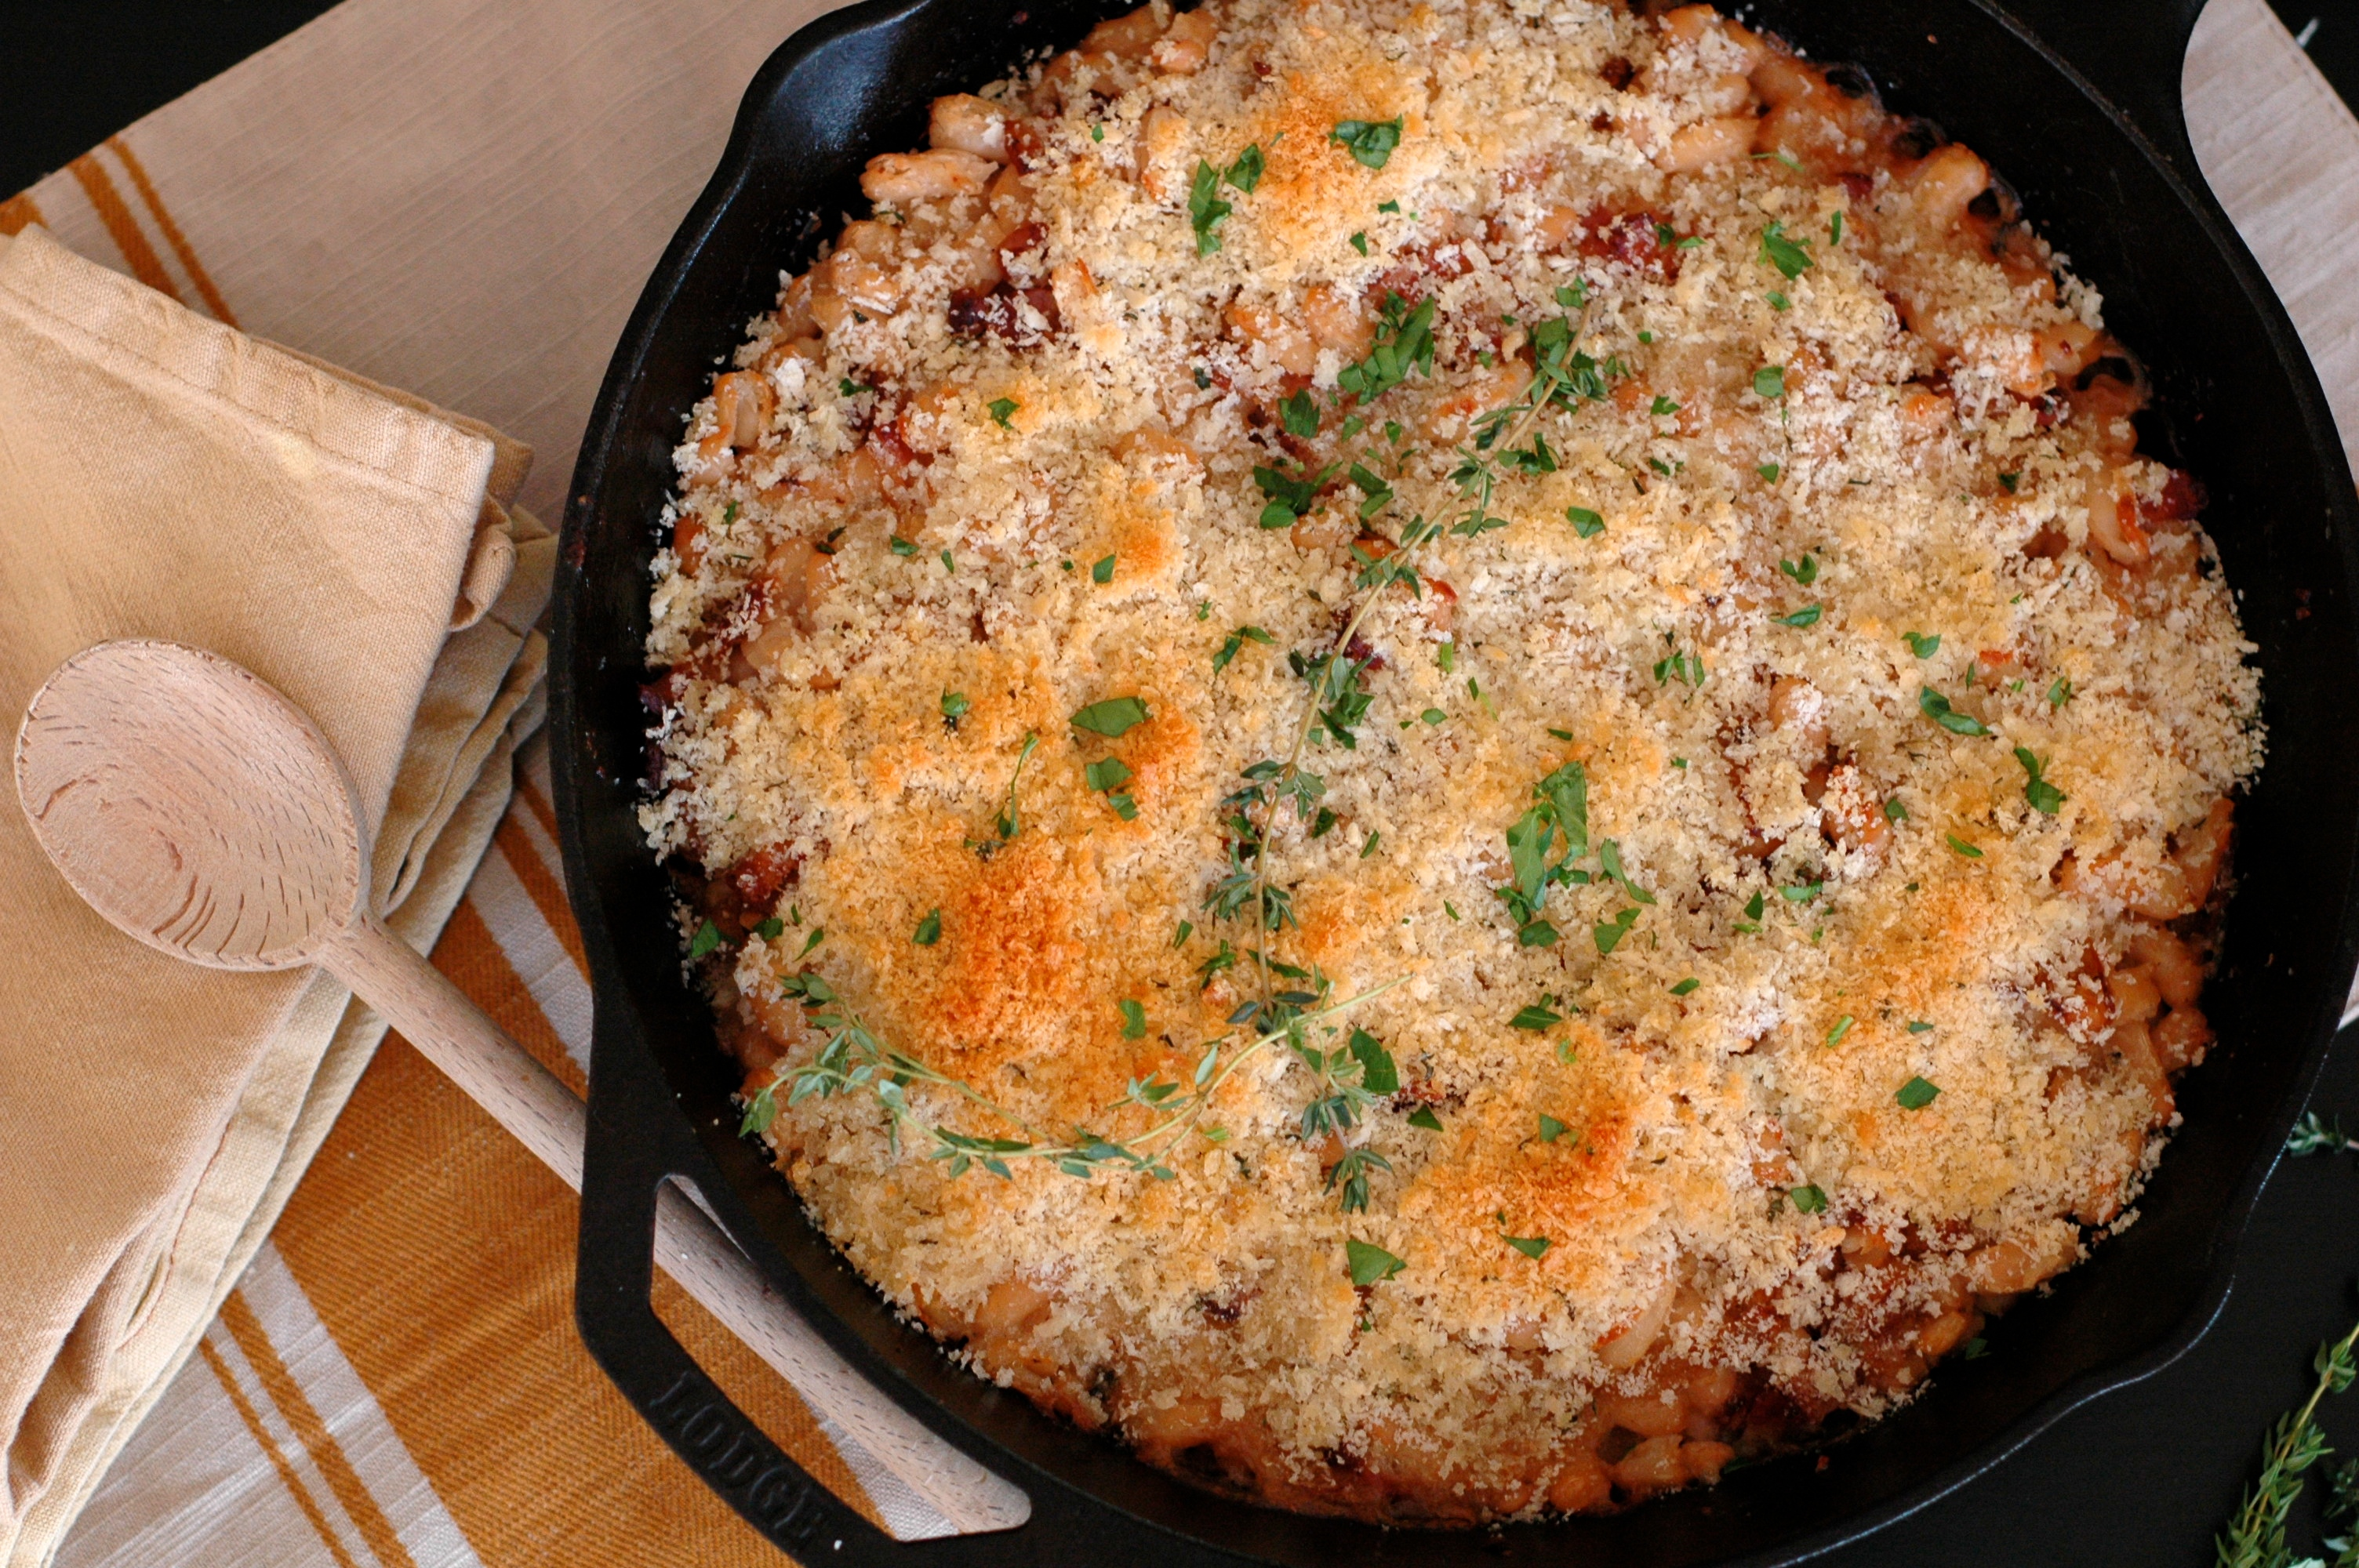 Baked White Beans with Bacon and Breadcrumbs